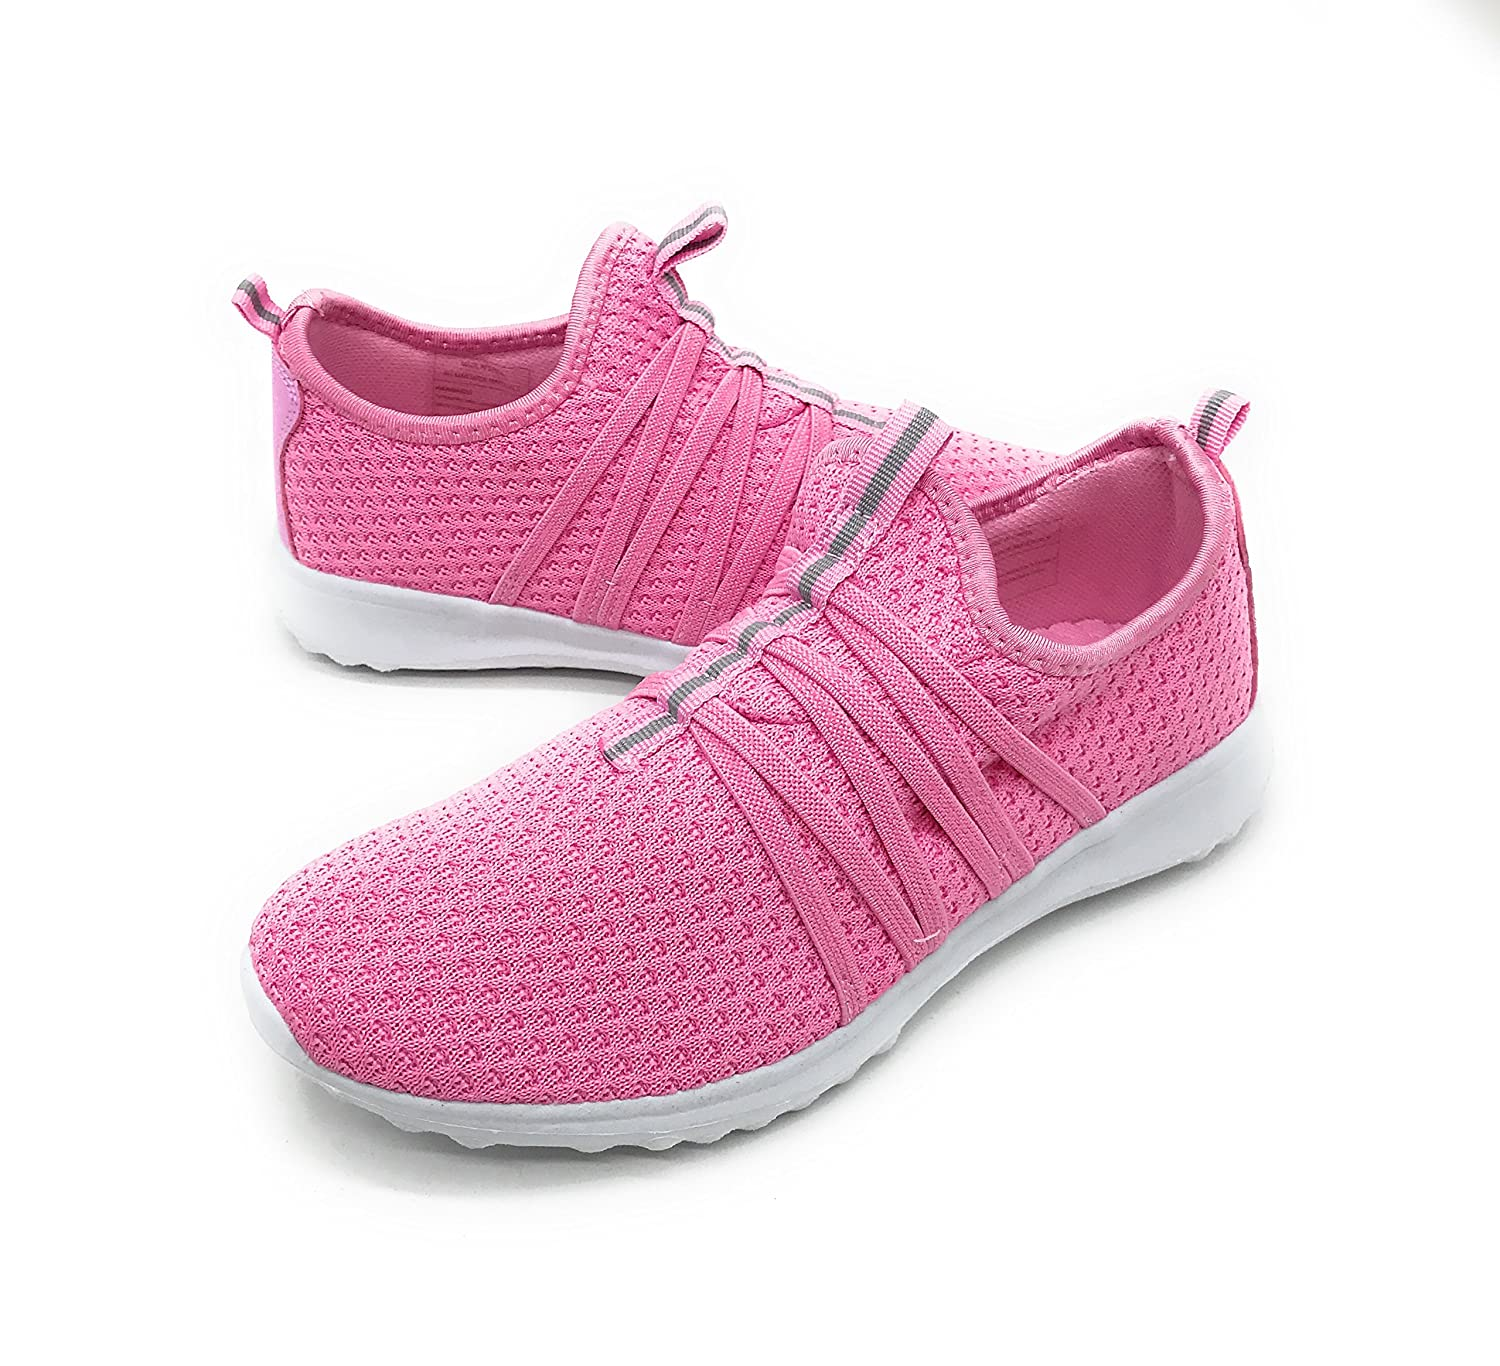 Blue Berry EASY21 Women Casual Fashion Sneakers Breathable Athletic Sports Light Weight Shoes B079VY6WJ5 5 B(M) US|Pink01